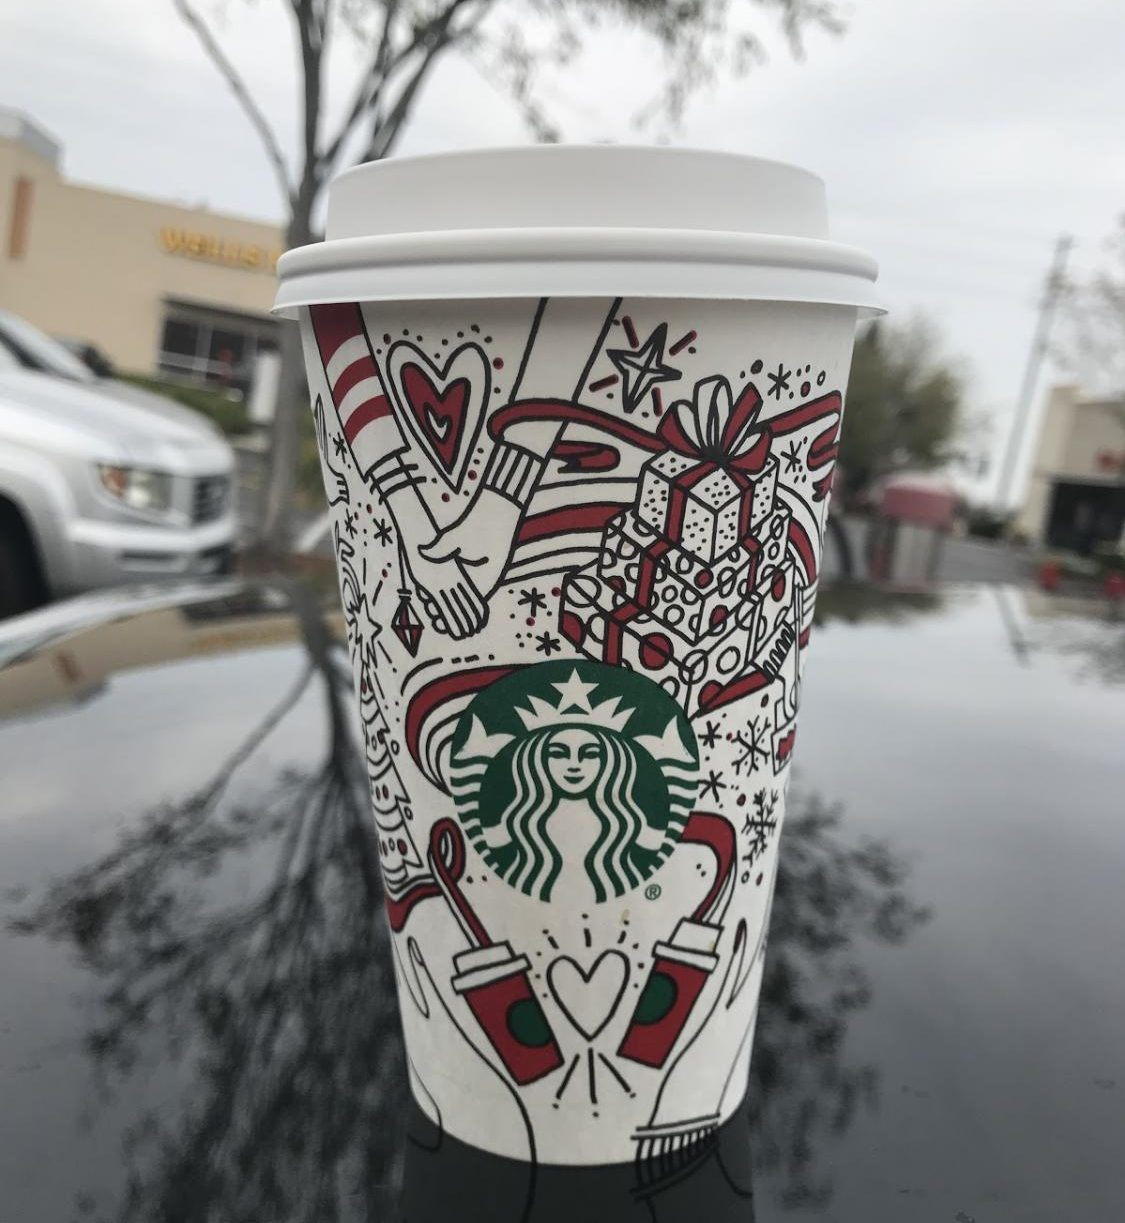 A delicious peppermint mocha in Starbucks' latest holiday cup. The drink is topped with whipped cream and chocolate curls.